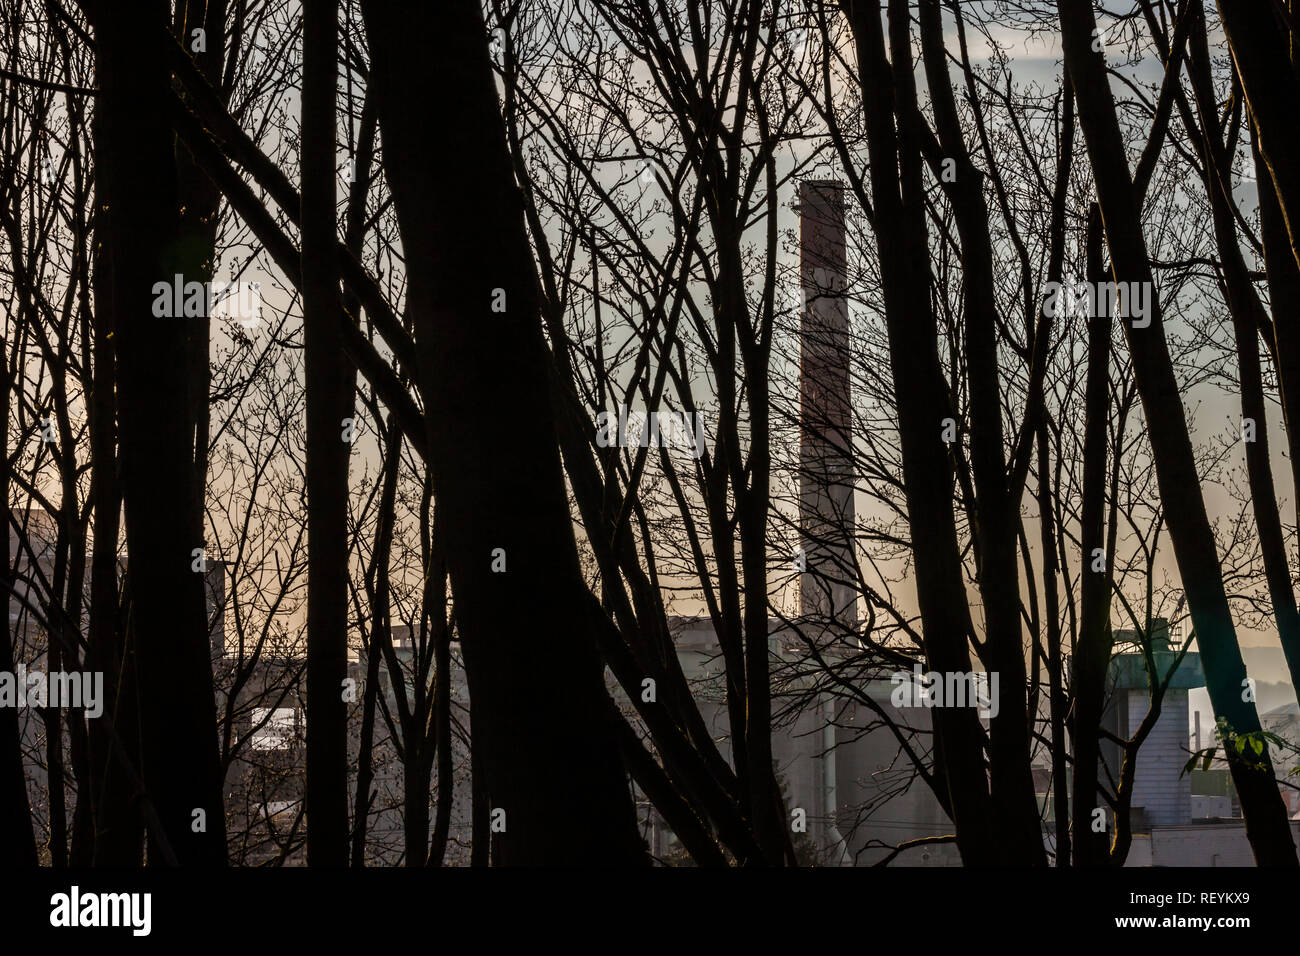 View of a smoke stack as seen through a forest of Spring trees before they sprout their leaves, Seattle, WA USA Stock Photo